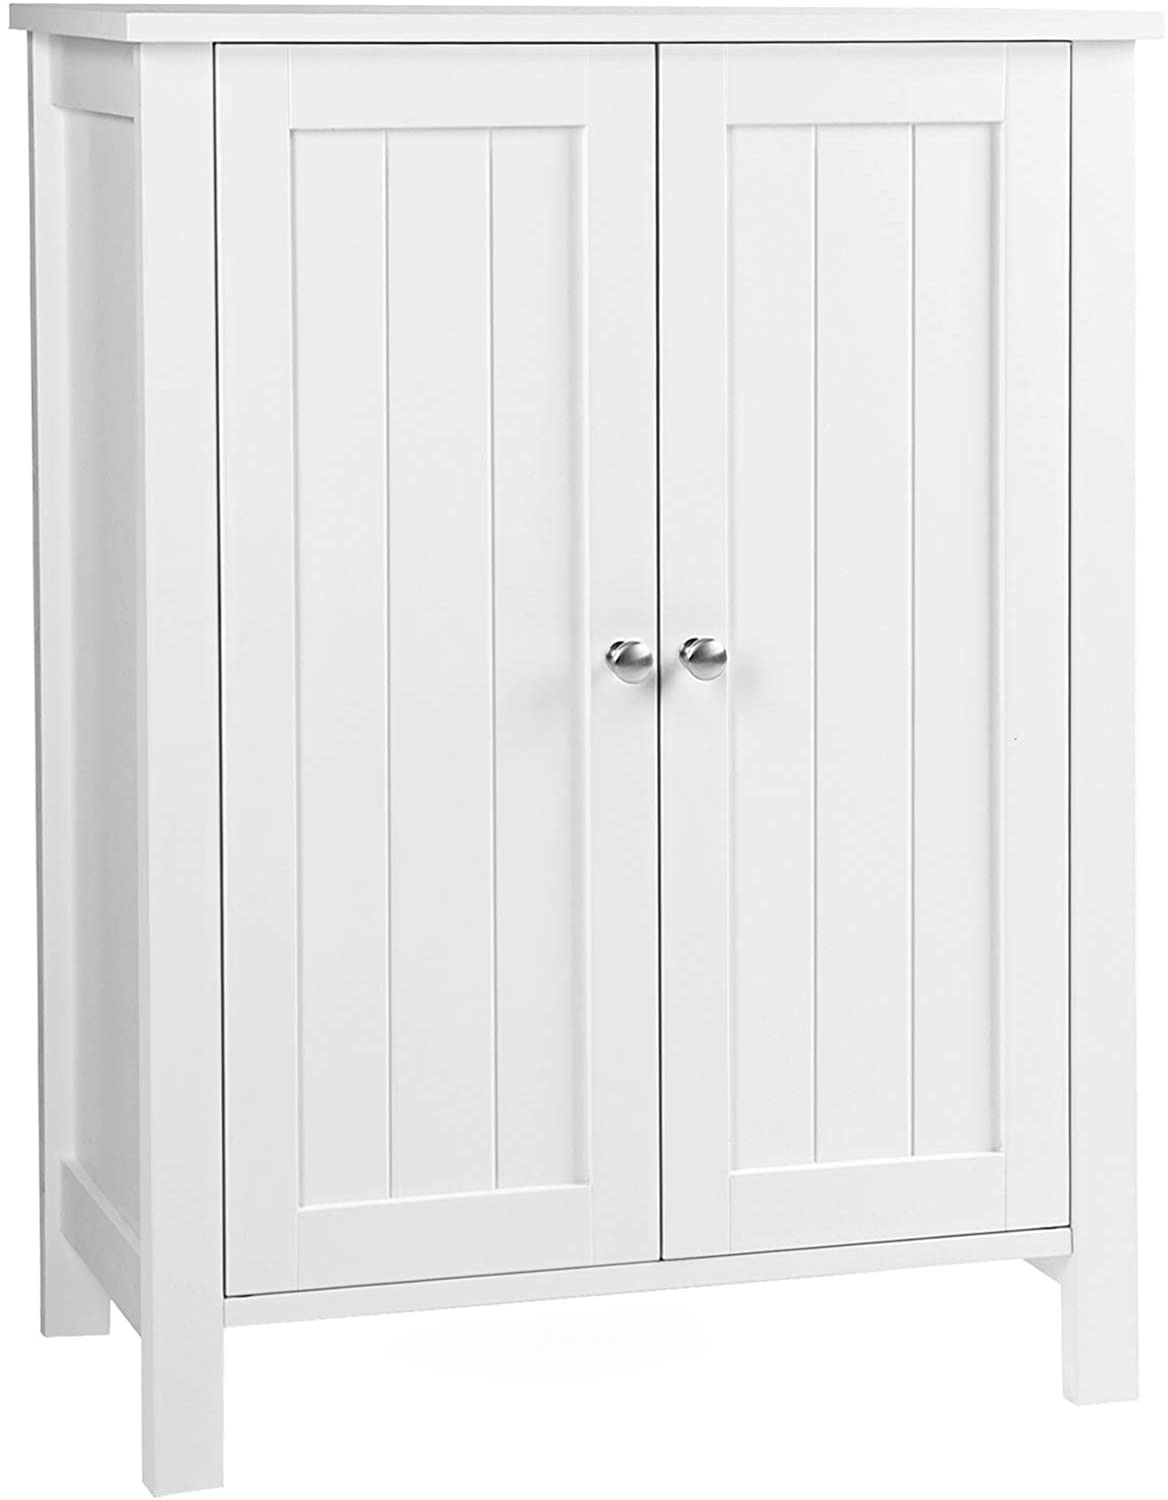 Storage Cabinets with Doors Fresh Vasagle Freestanding Bathroom Cabinet Storage Cupboard Unit with 2 Doors and 2 Adjustable Shelves White Bcb60w